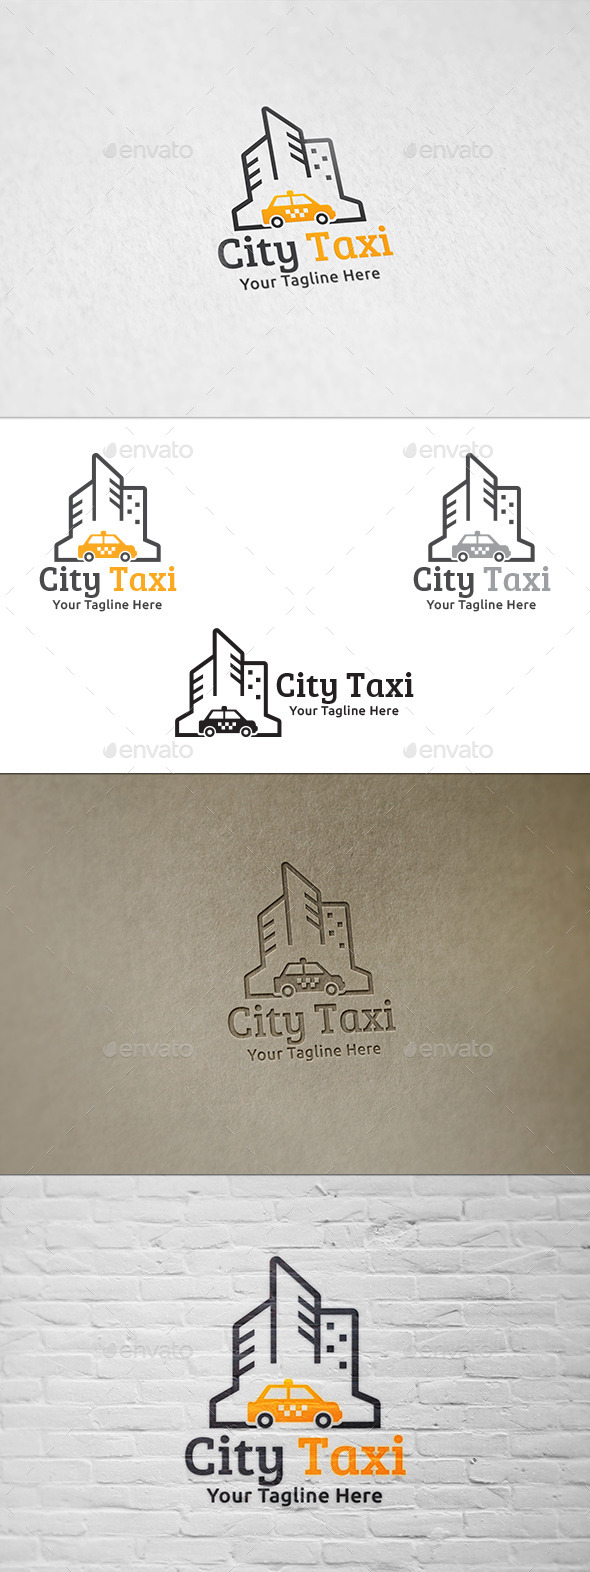 GraphicRiver City Taxi Logo Template 8974764